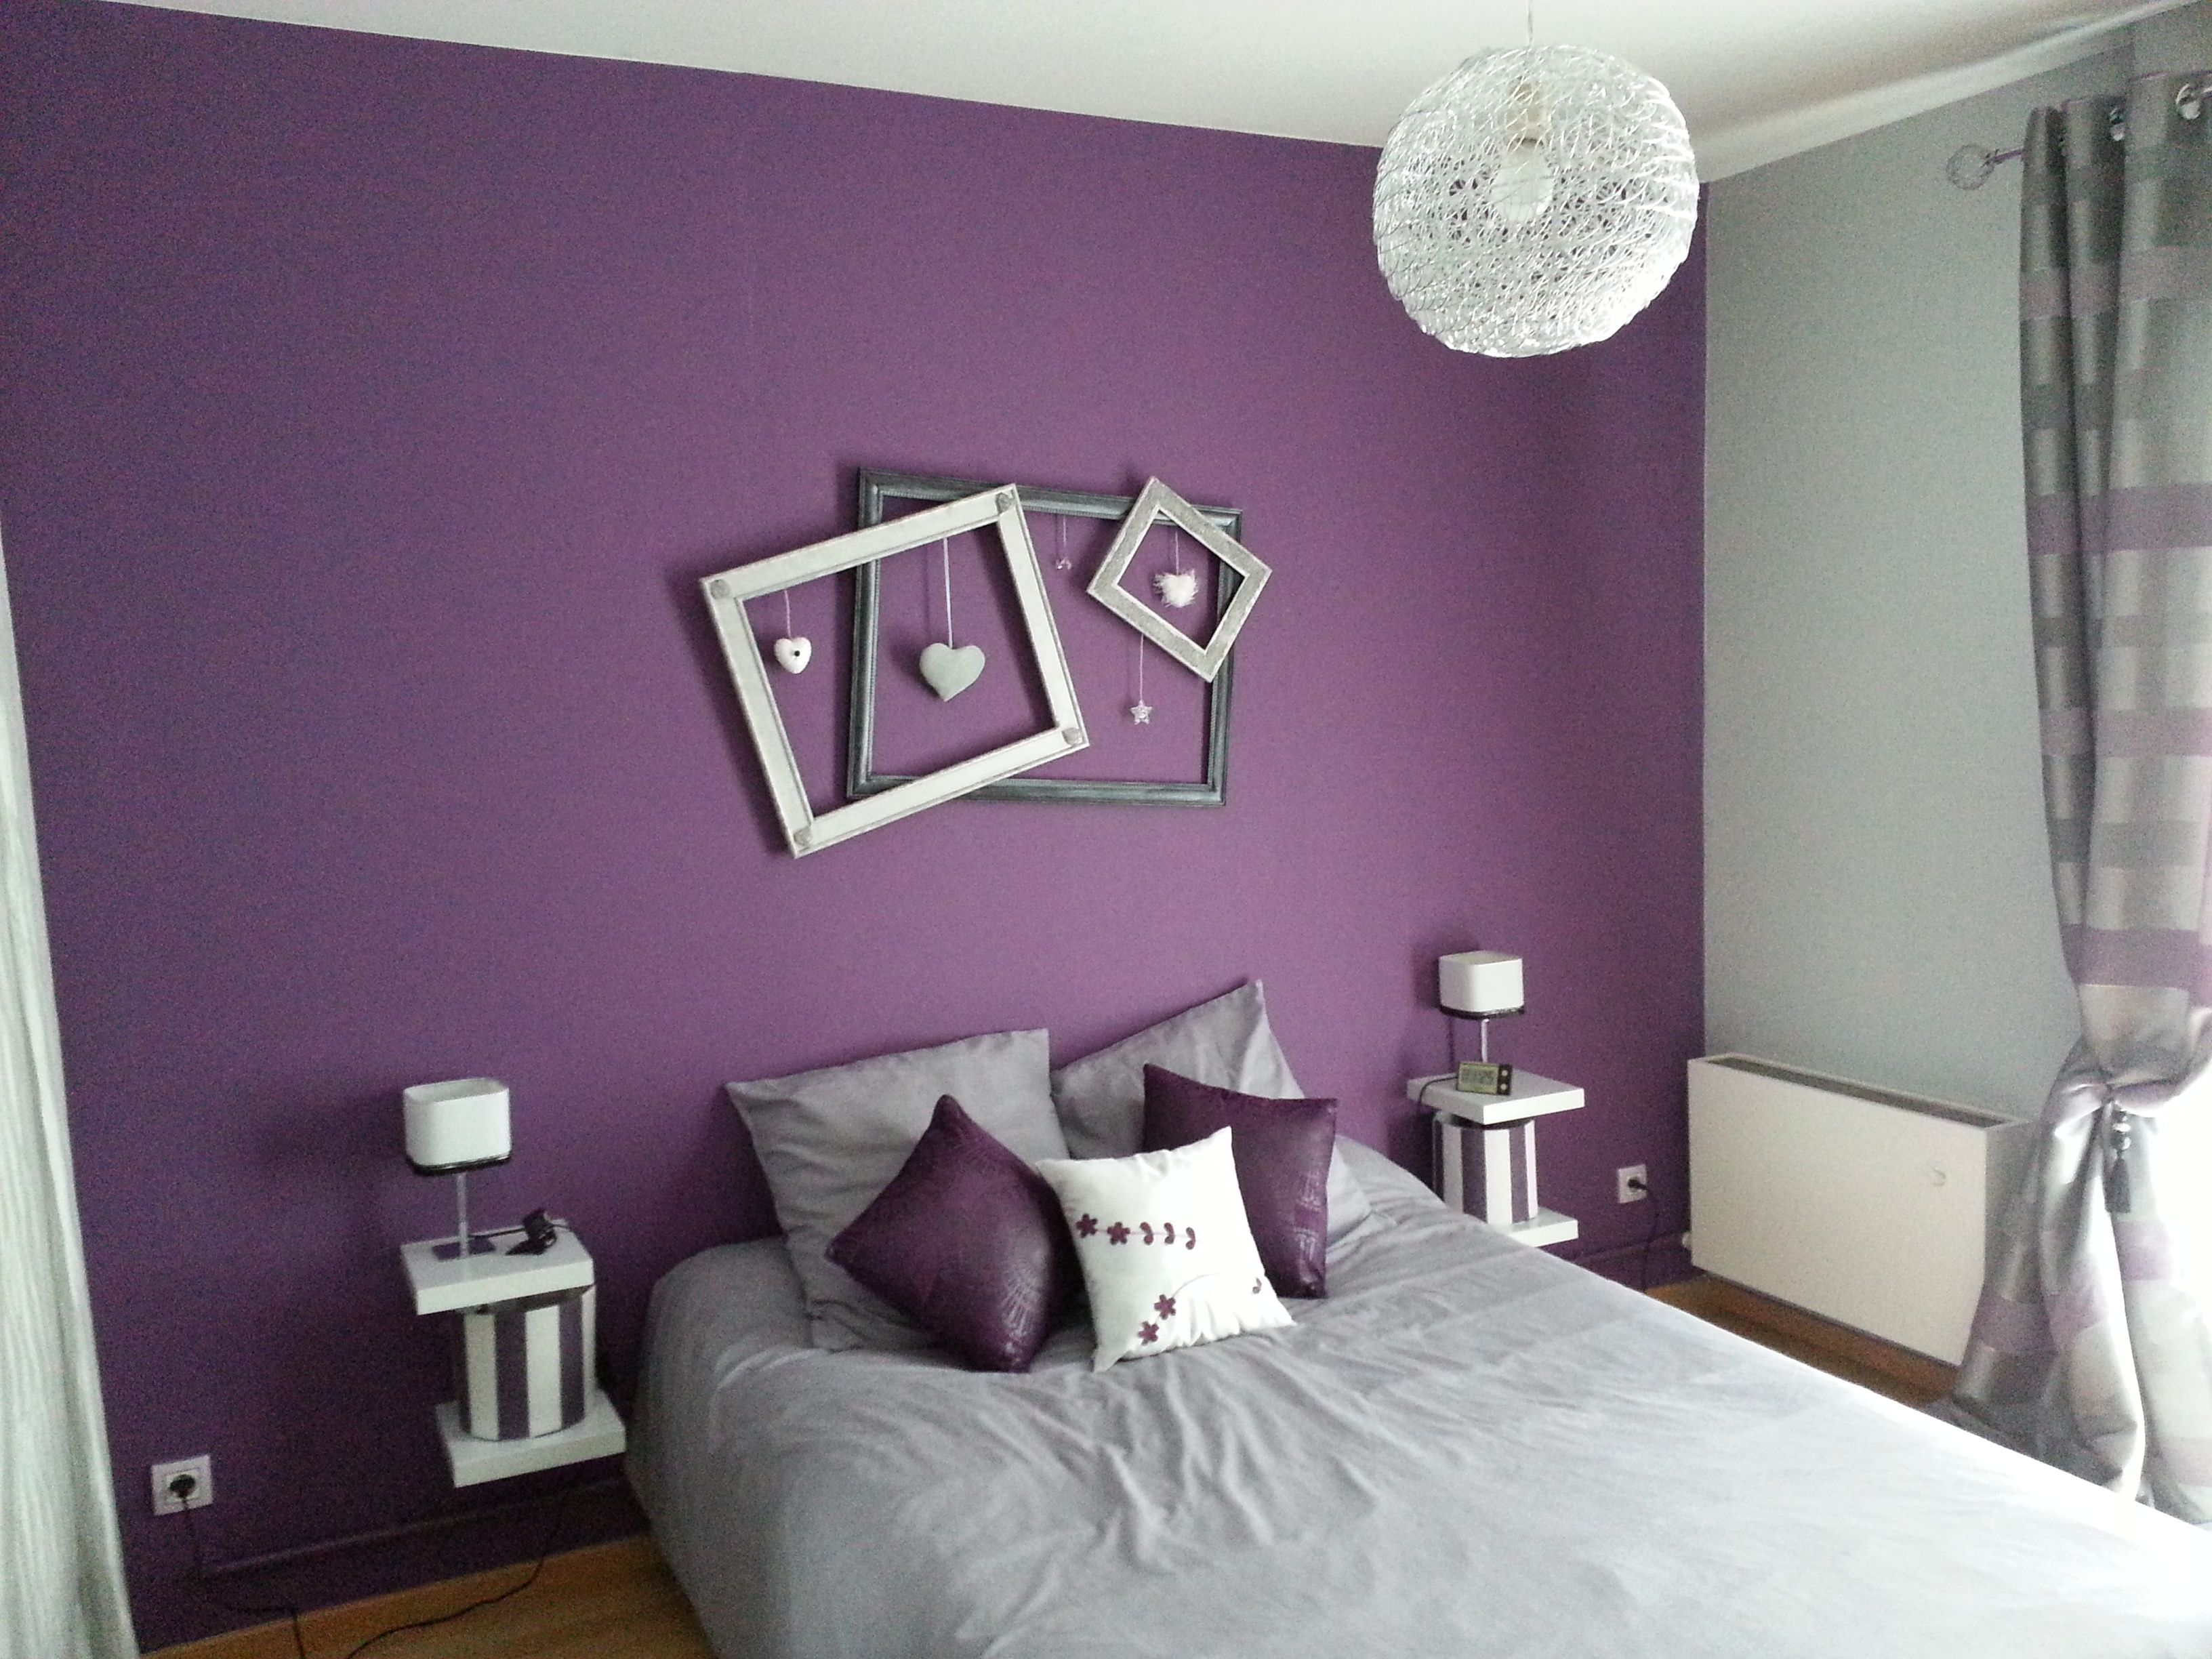 cuisine mauve - Recherche Google | Apartments | Bedroom, Decor ...